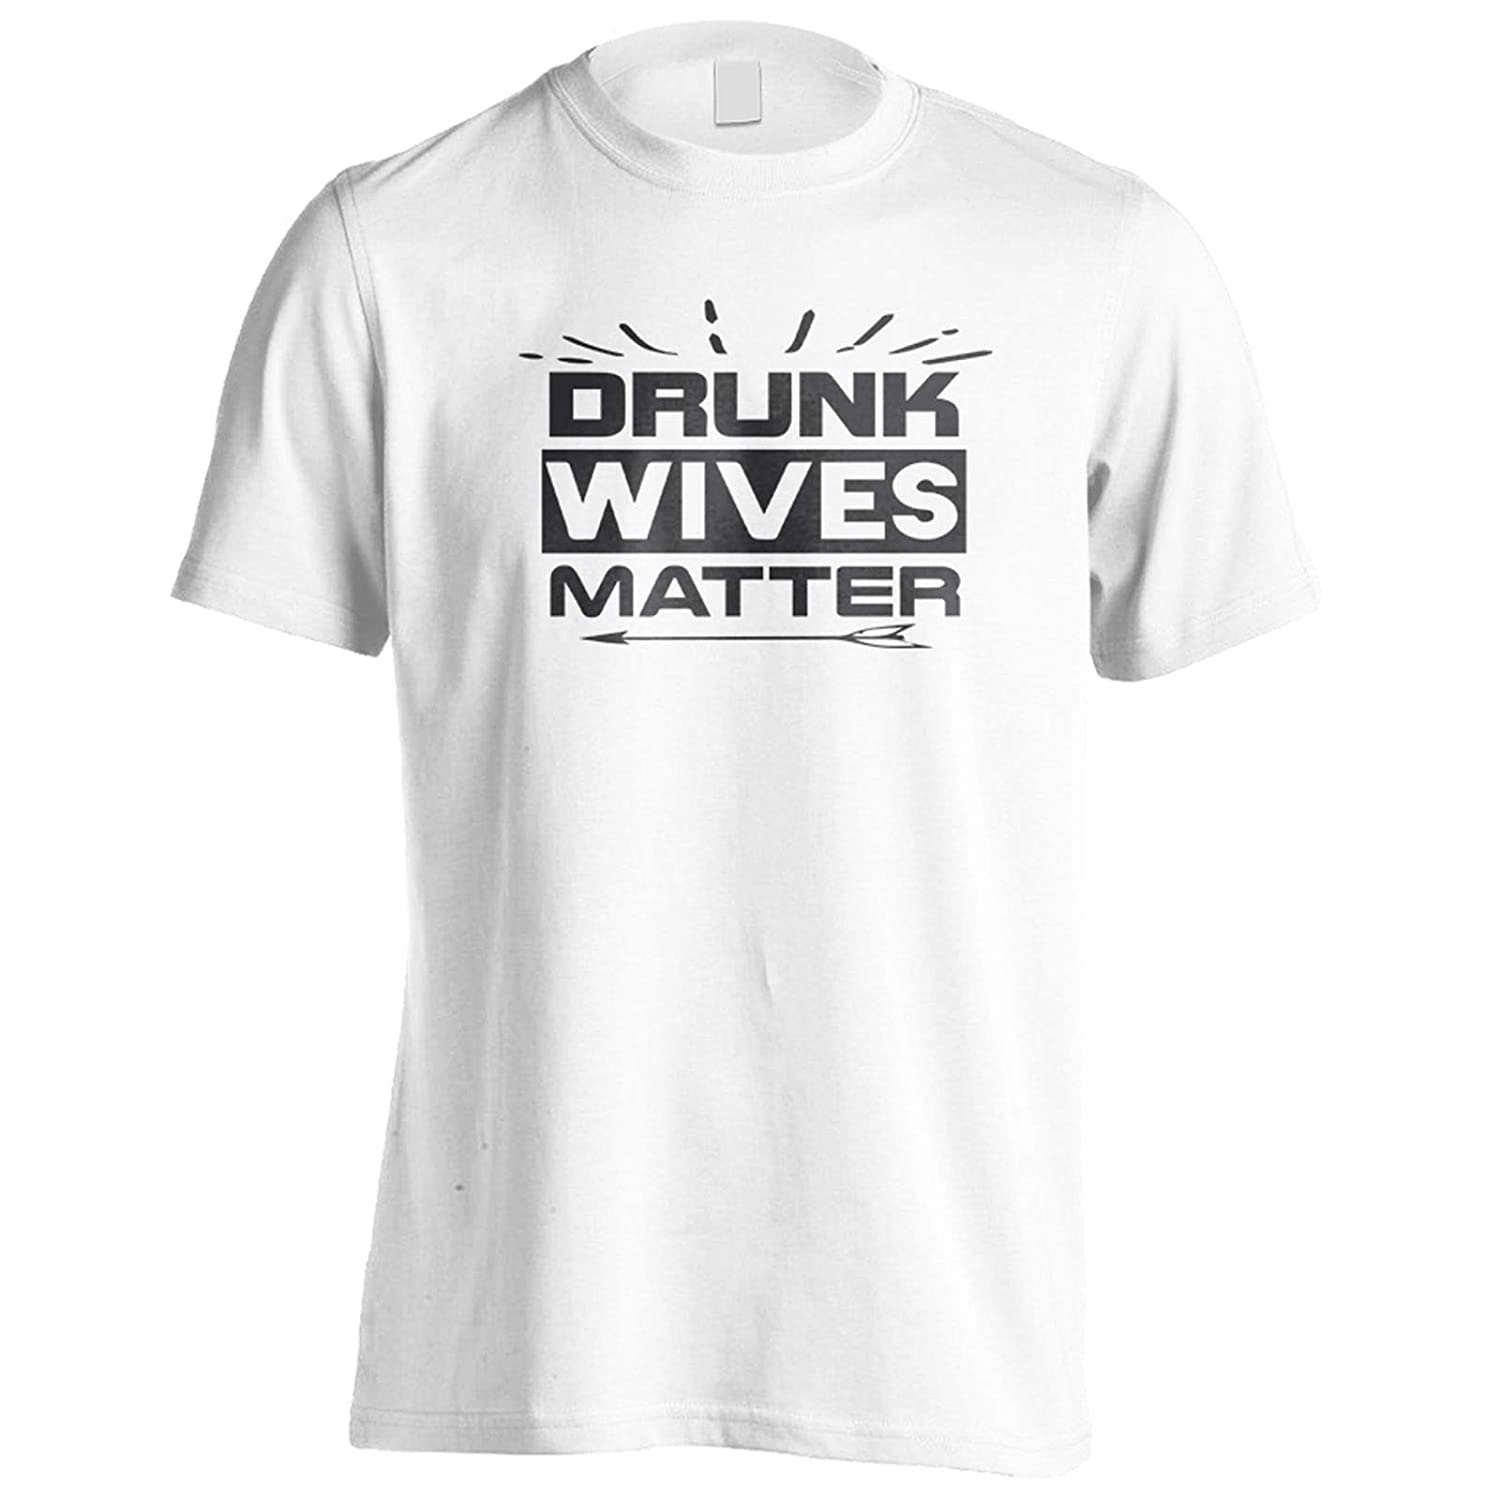 INNOGLEN Drunk Wives Matter Mens T-Shirt Tee gg226m